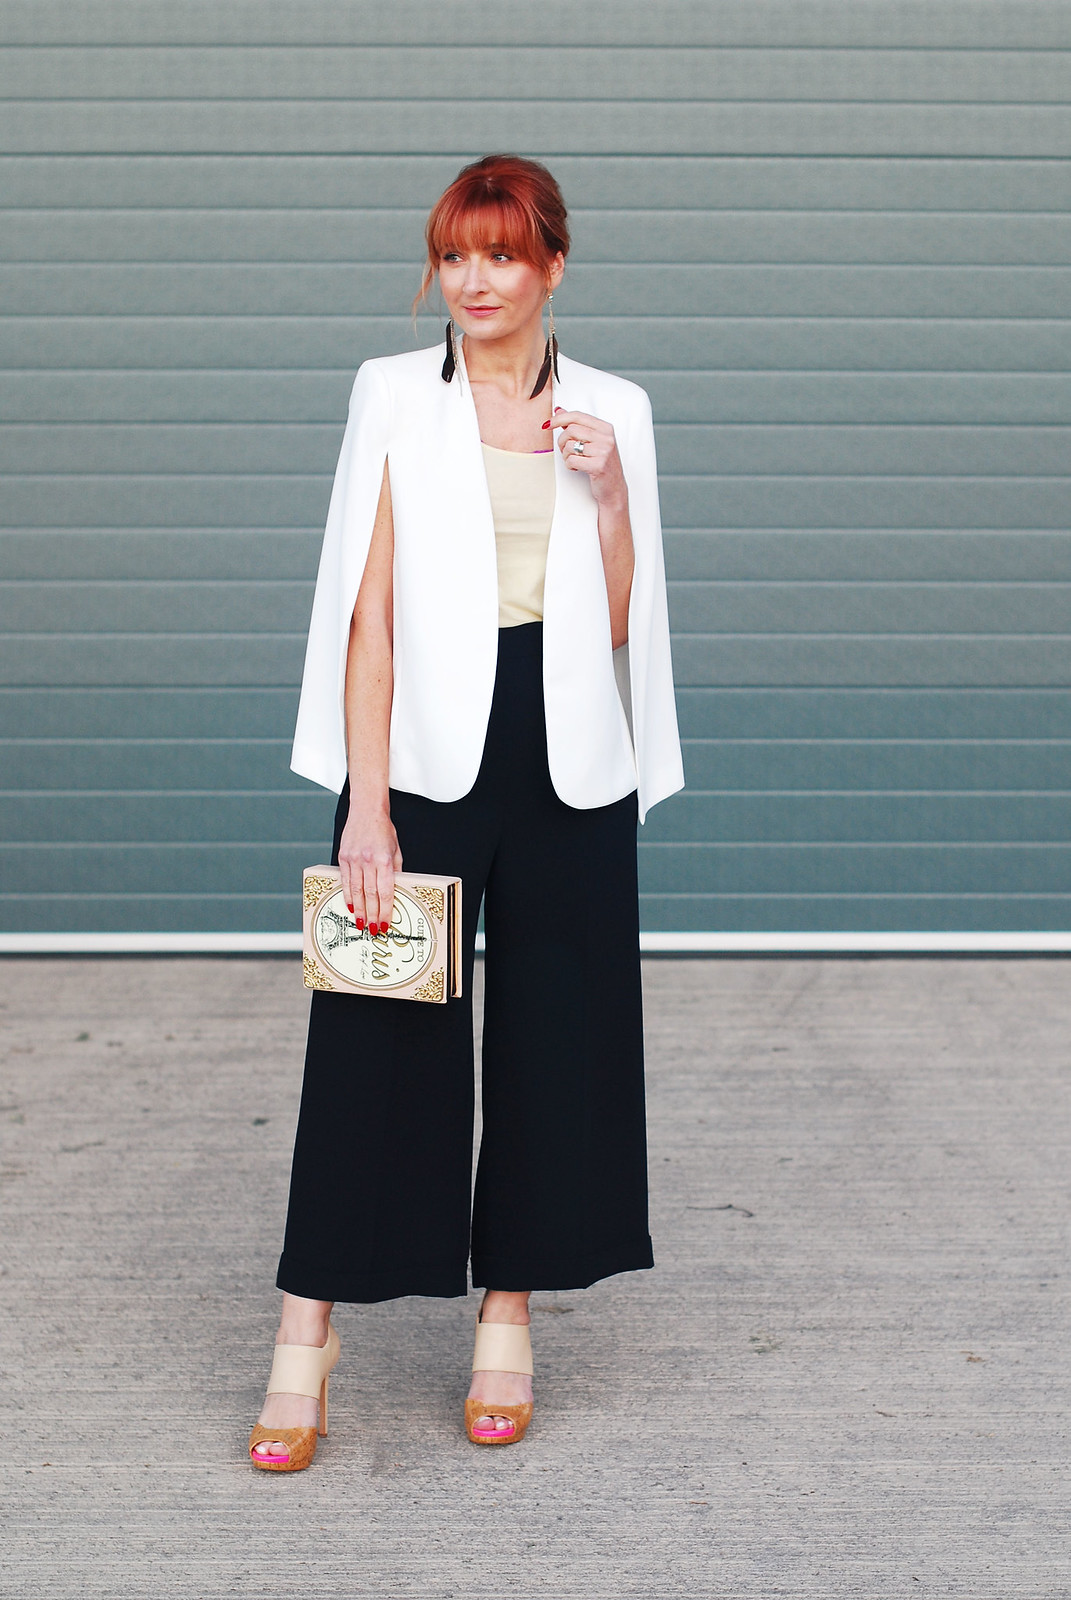 Awards ceremony outfit: White cape, navy culottes, Paris bbok clutch | Not Dressed As Lamb, over 40 style